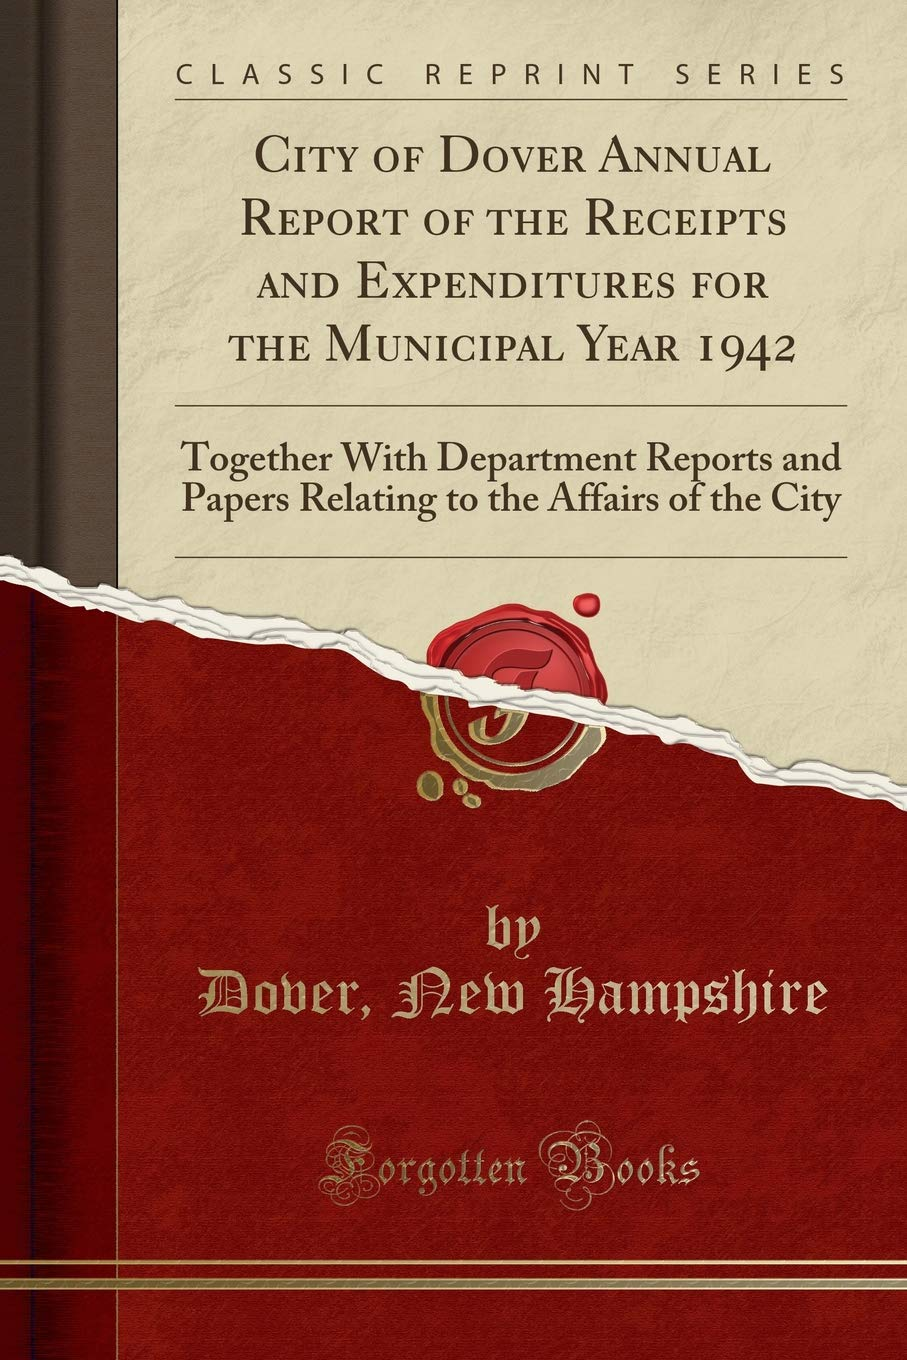 Download City of Dover Annual Report of the Receipts and Expenditures for the Municipal Year 1942: Together with Department Reports and Papers Relating to the Affairs of the City (Classic Reprint) pdf epub